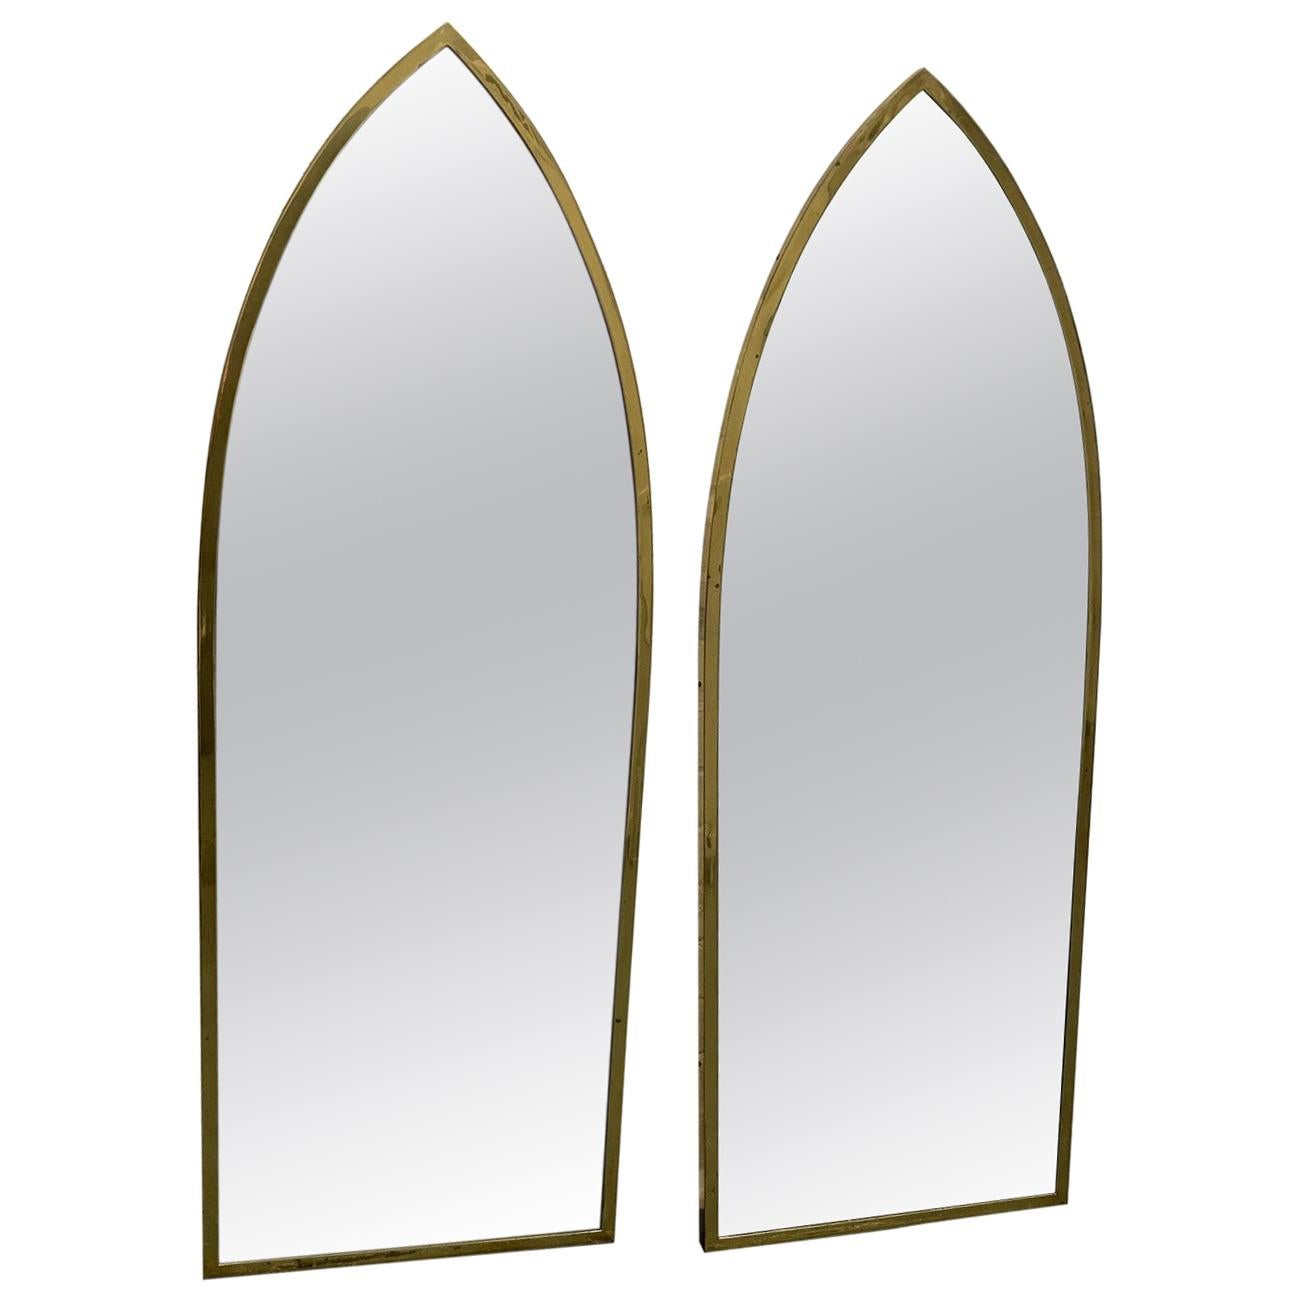 Pair Of Mid Century Modern Brass Arched Mirrors For Sale At 1stdibs